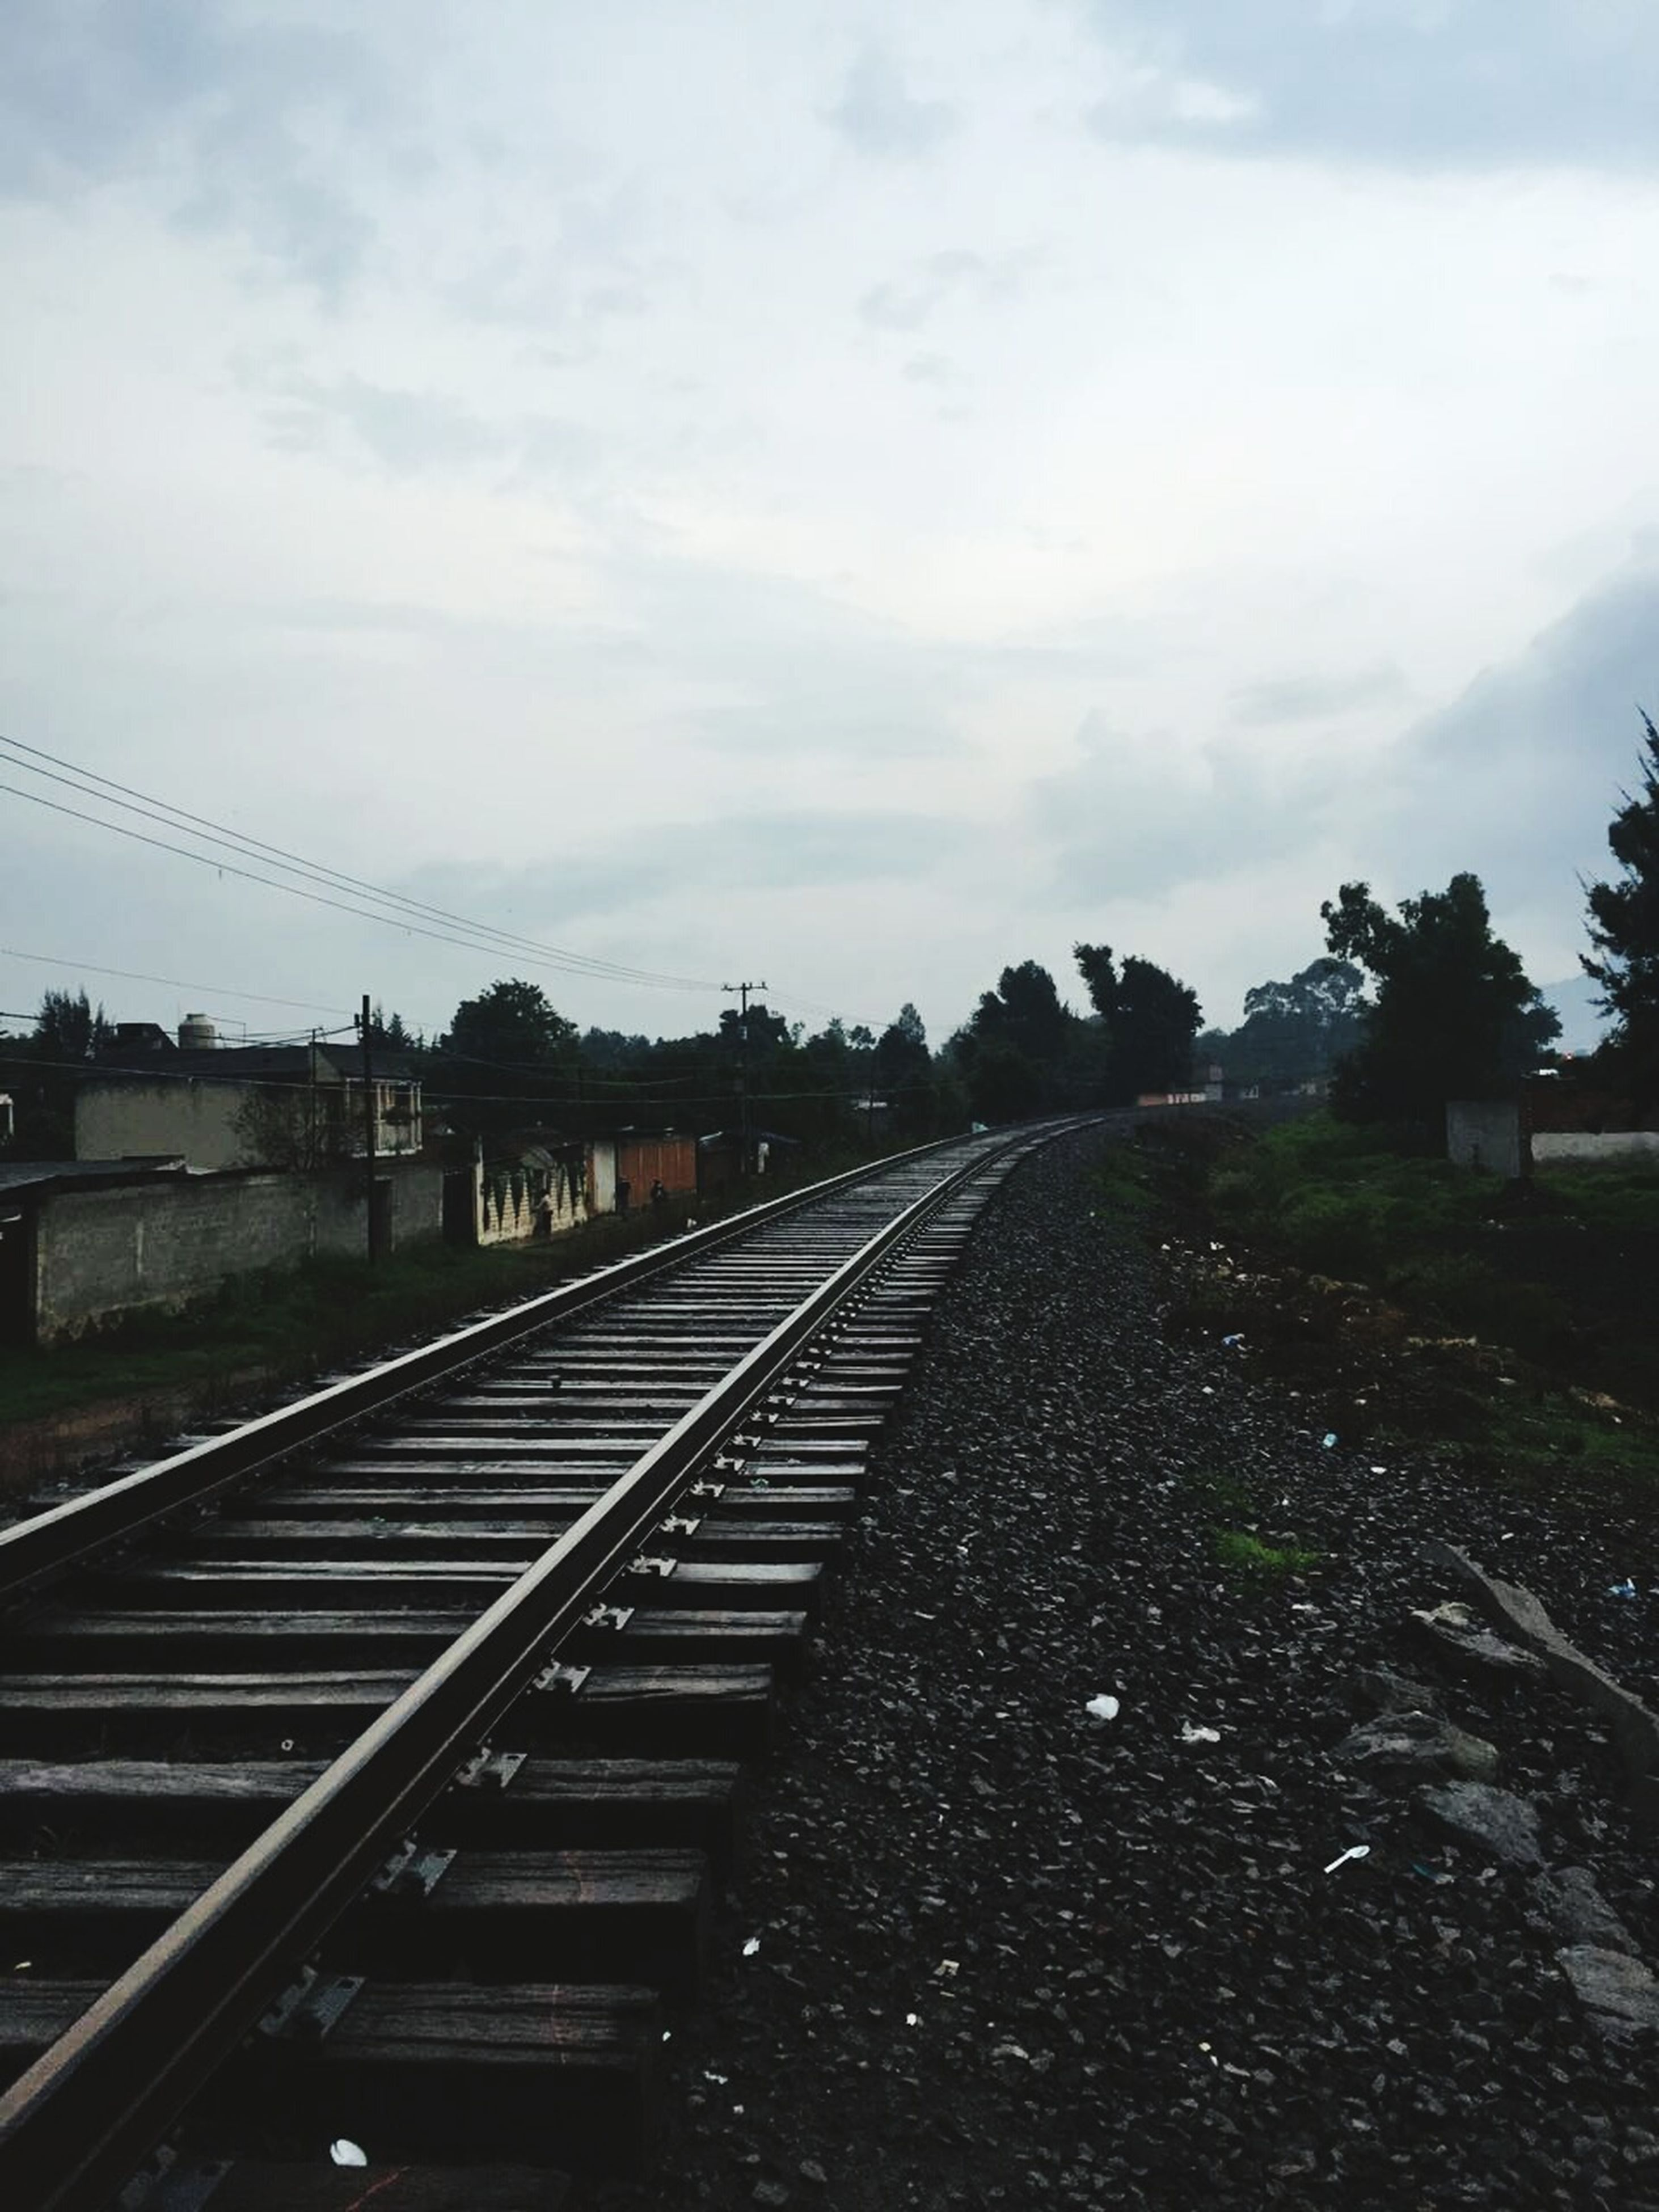 railroad track, sky, rail transportation, transportation, cloud - sky, the way forward, tree, diminishing perspective, vanishing point, connection, railway track, built structure, cloudy, public transportation, cloud, growth, nature, outdoors, day, field